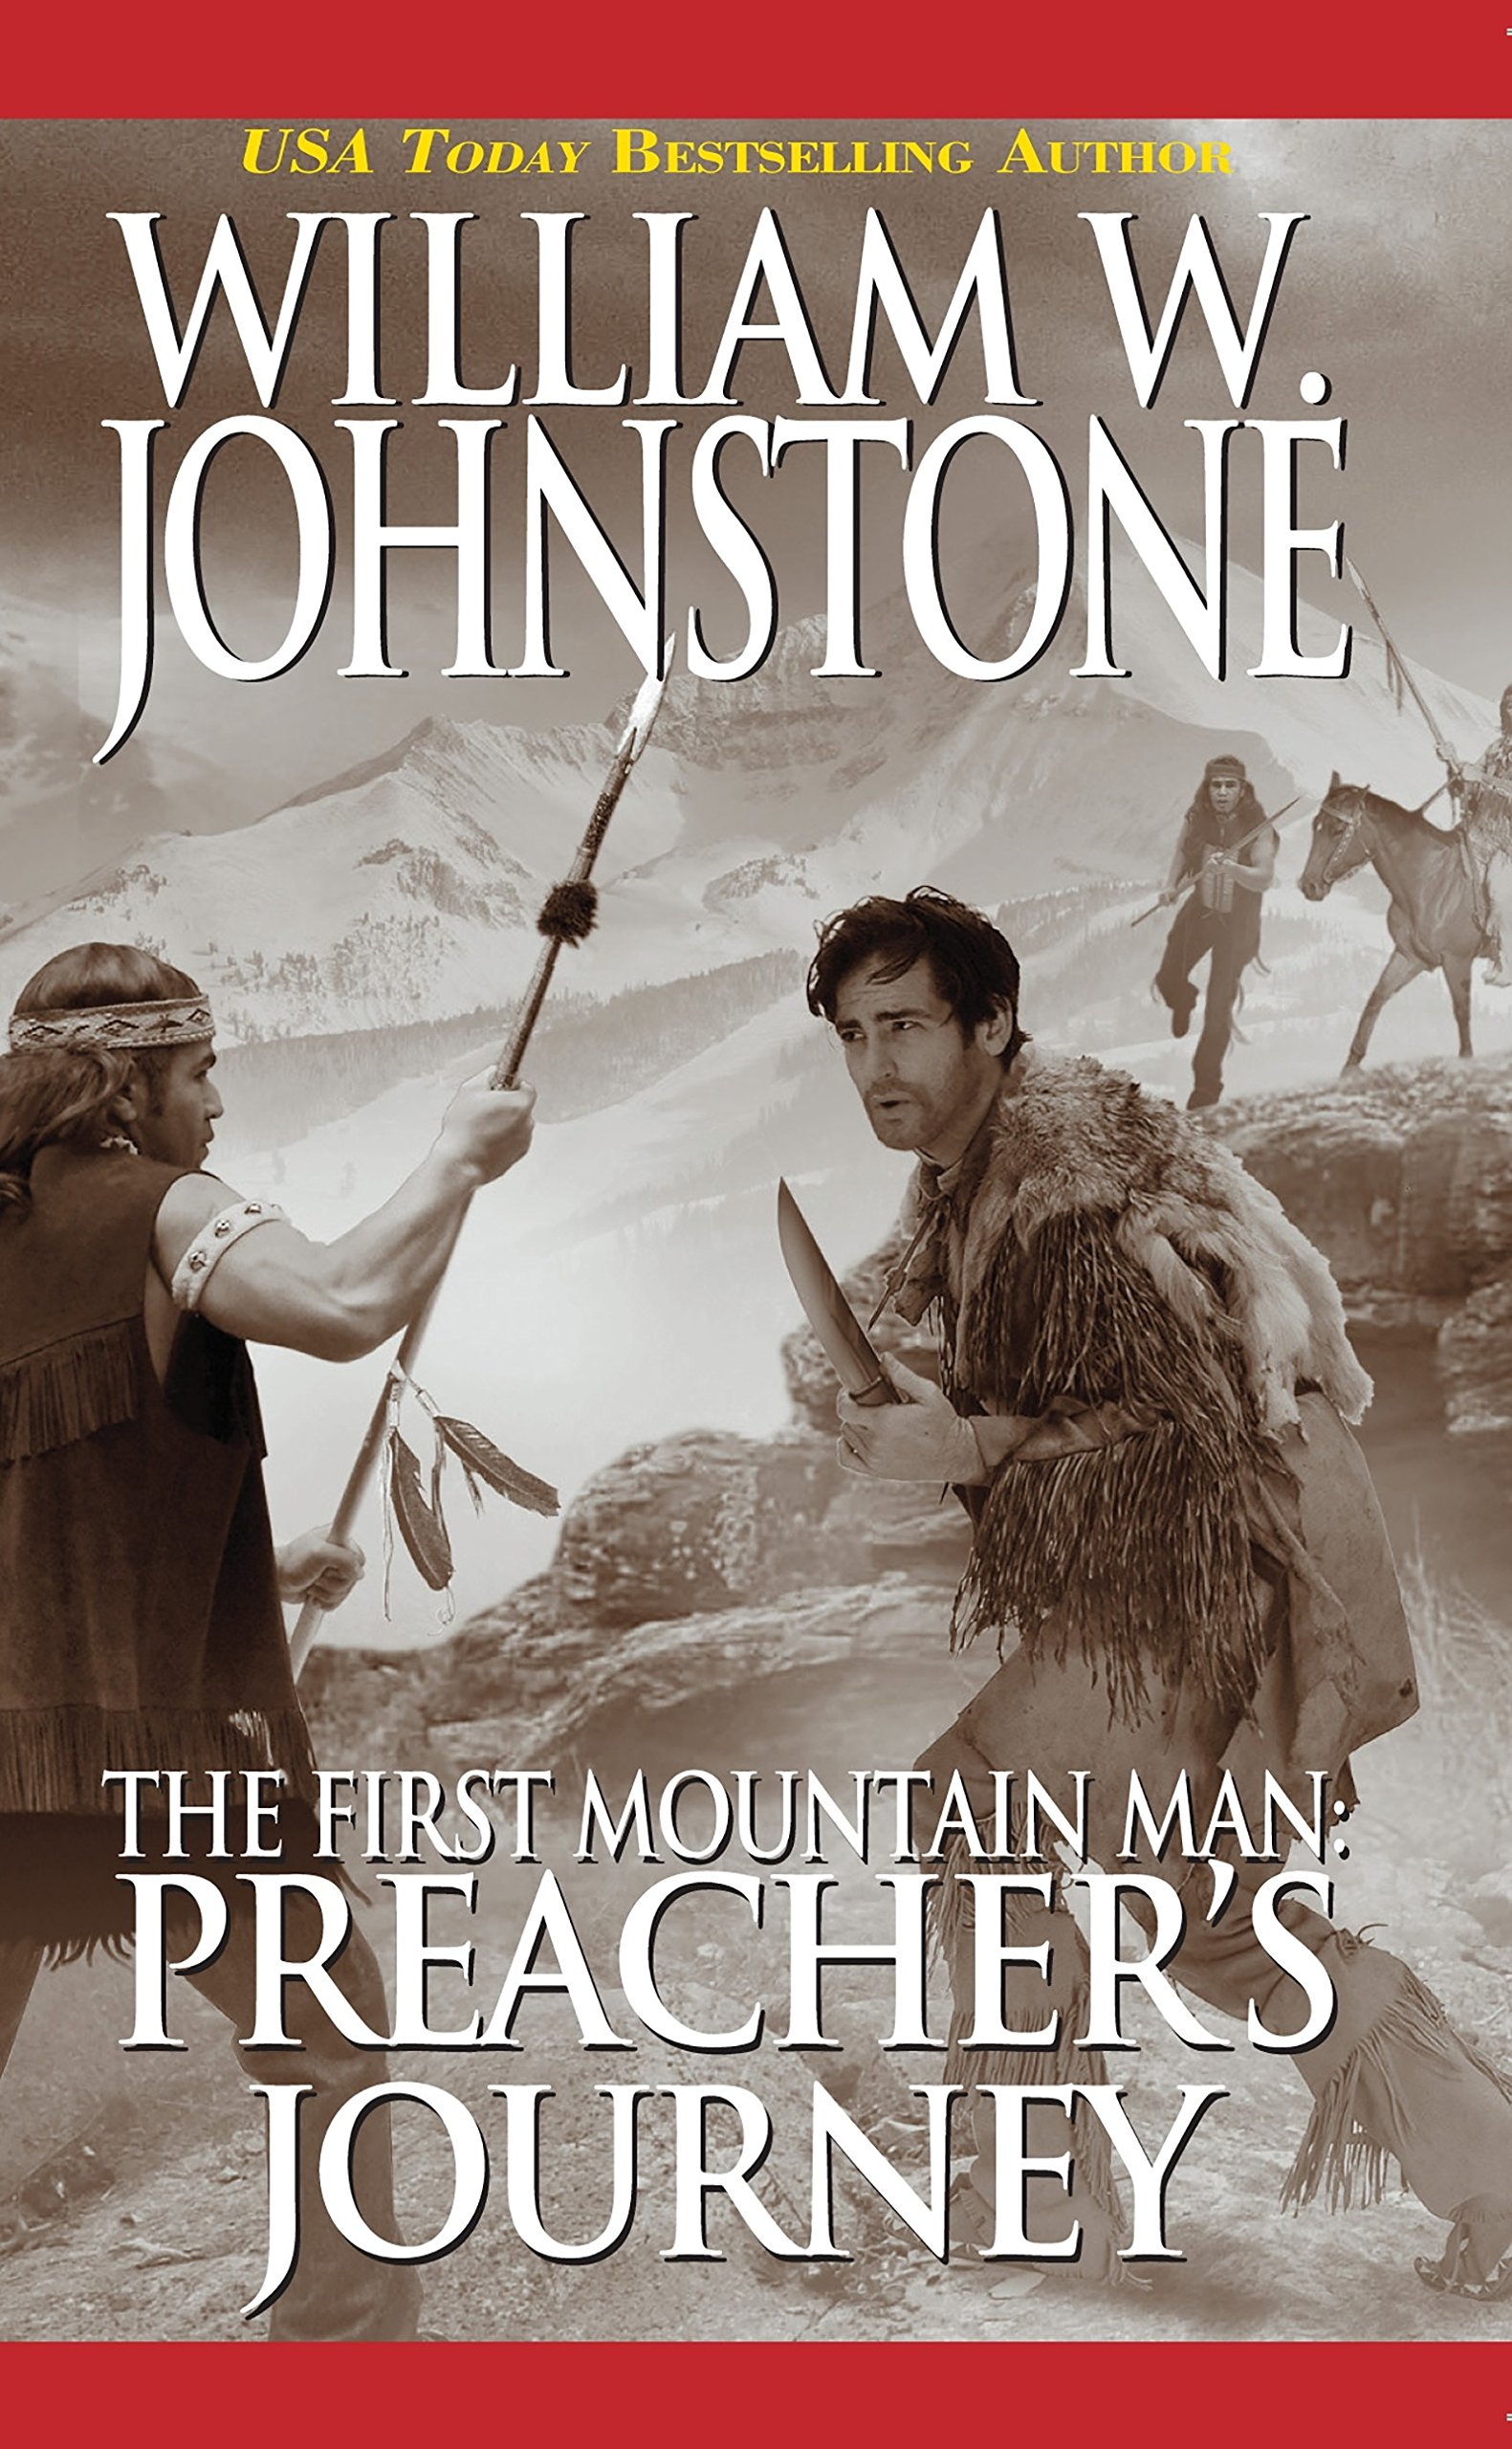 Preacher's Journey (Preacher/First Mountain Man)